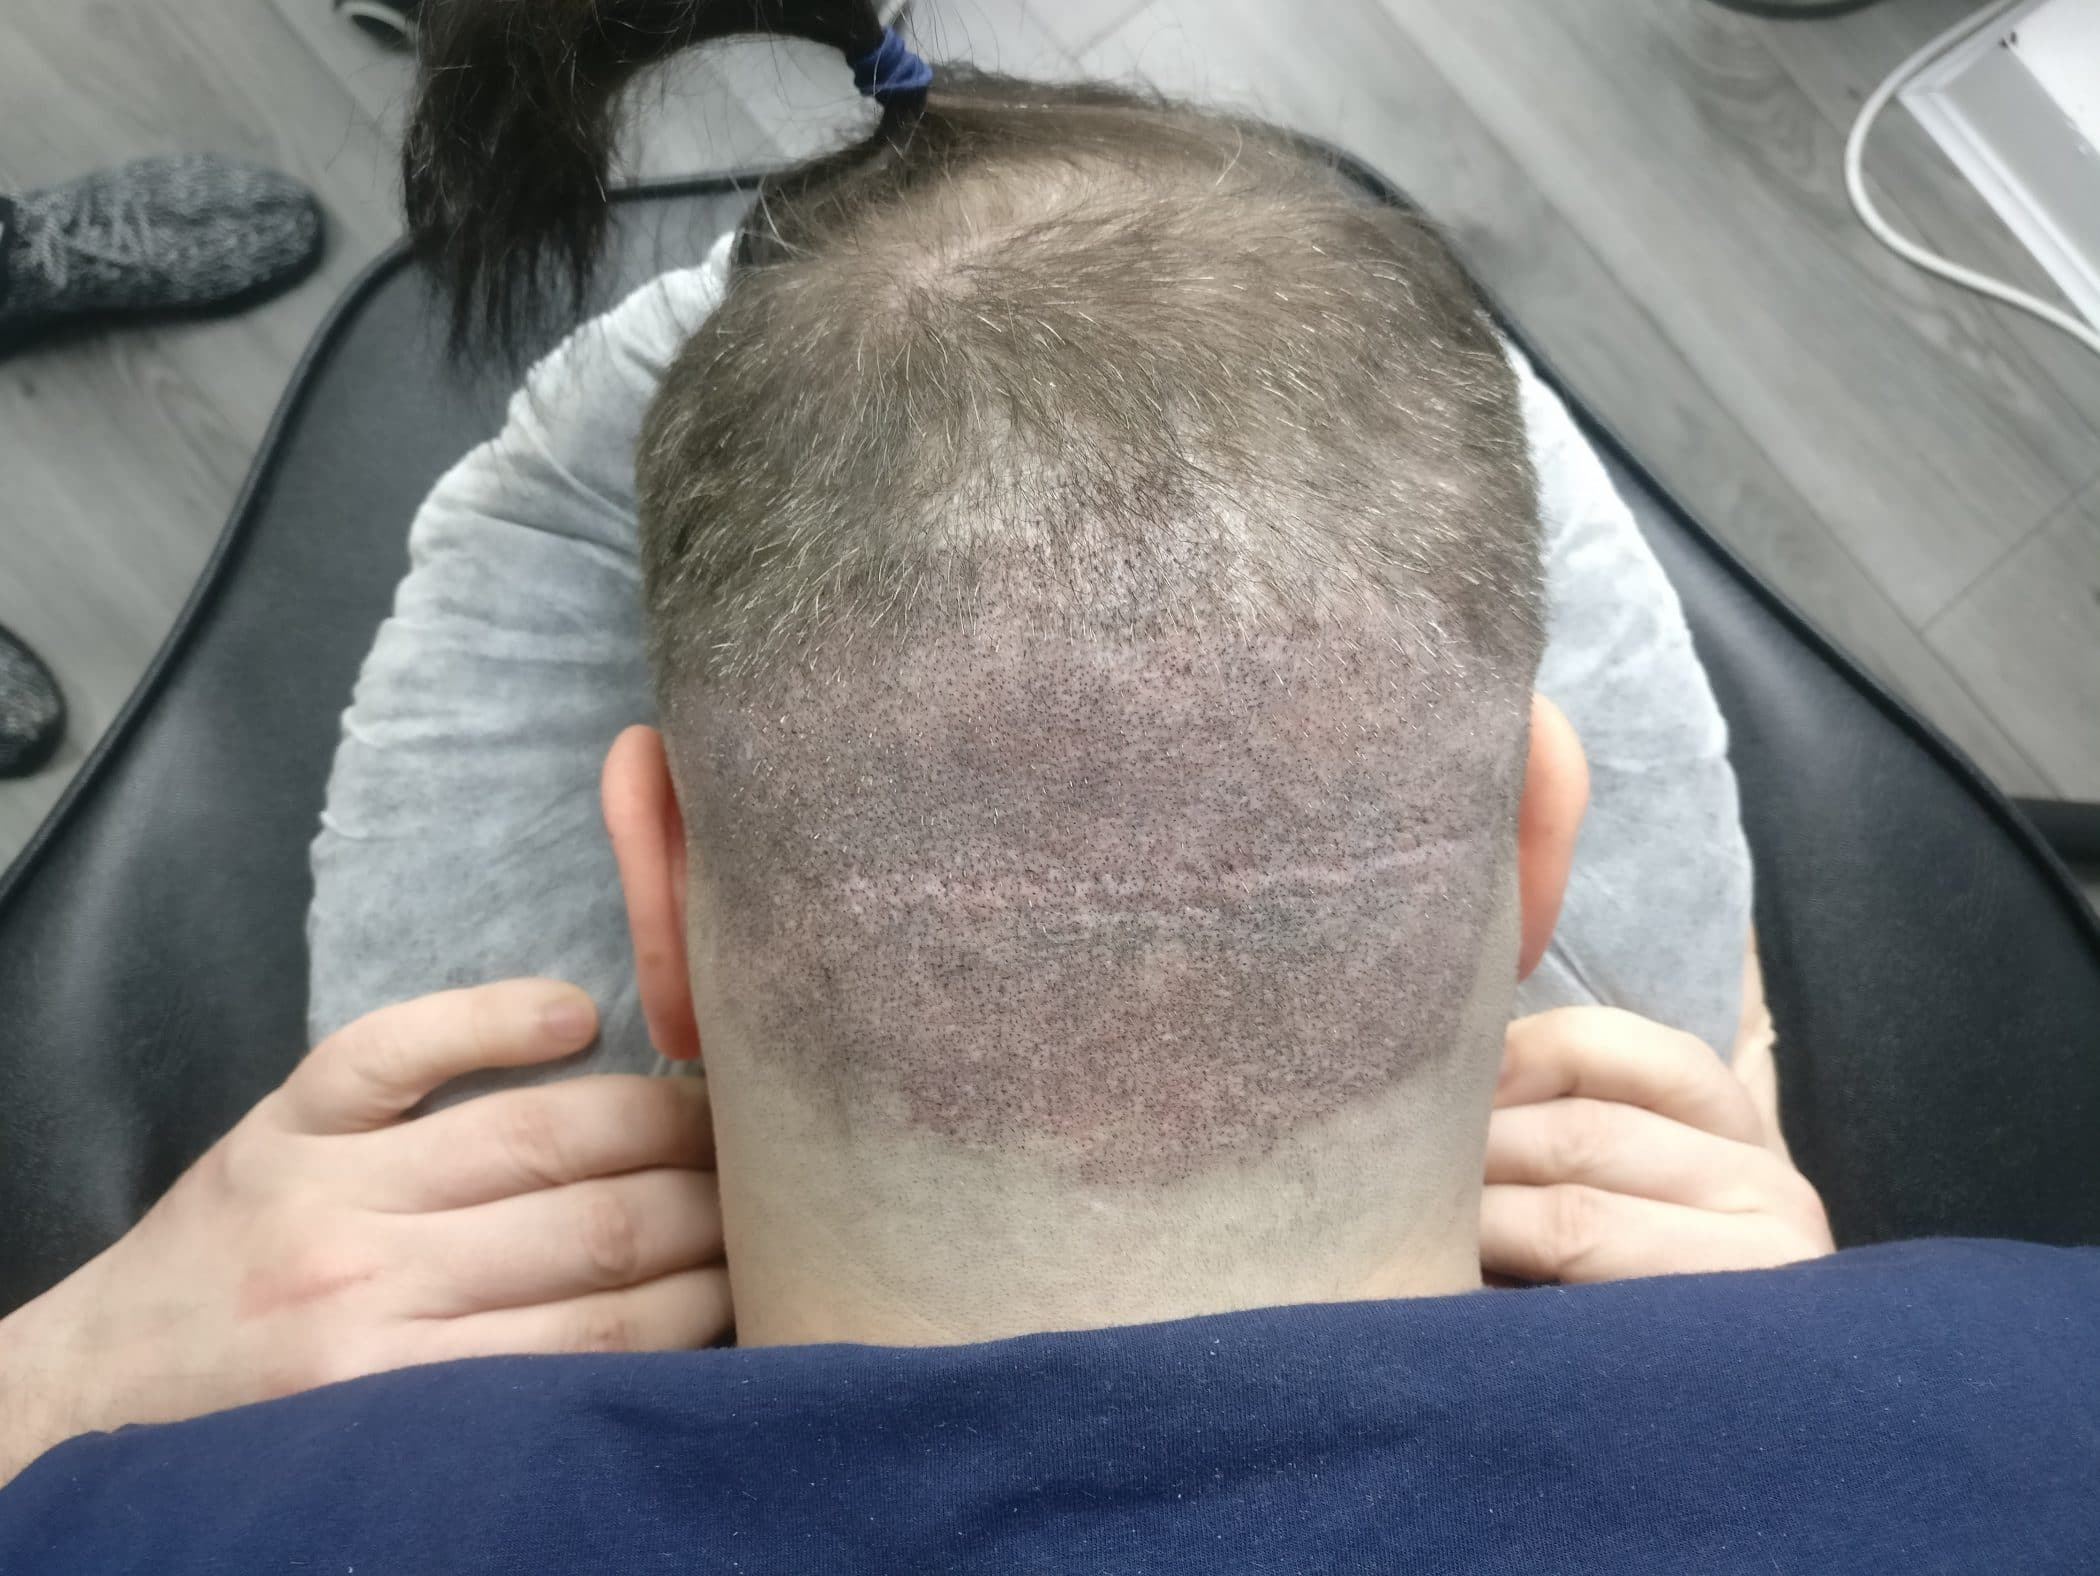 Scalp micropigmentation and getting a hair transplant